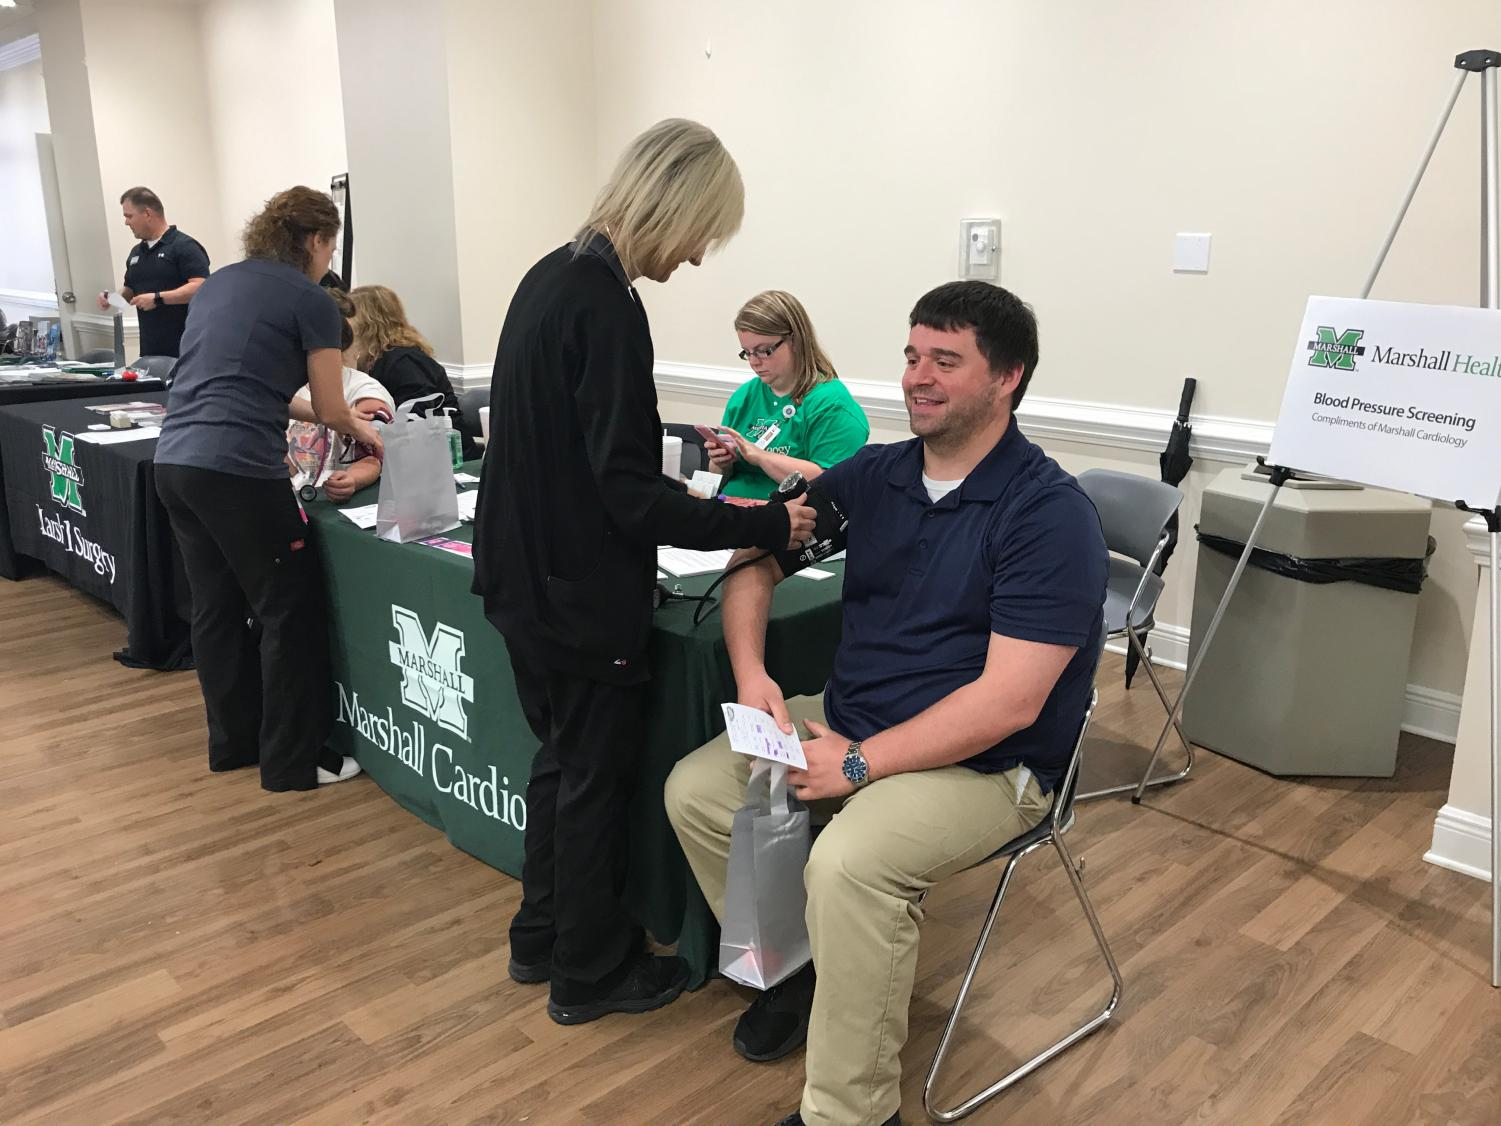 The Health and Wellness fair offered free flu vaccinations for Marshall students and faculty.